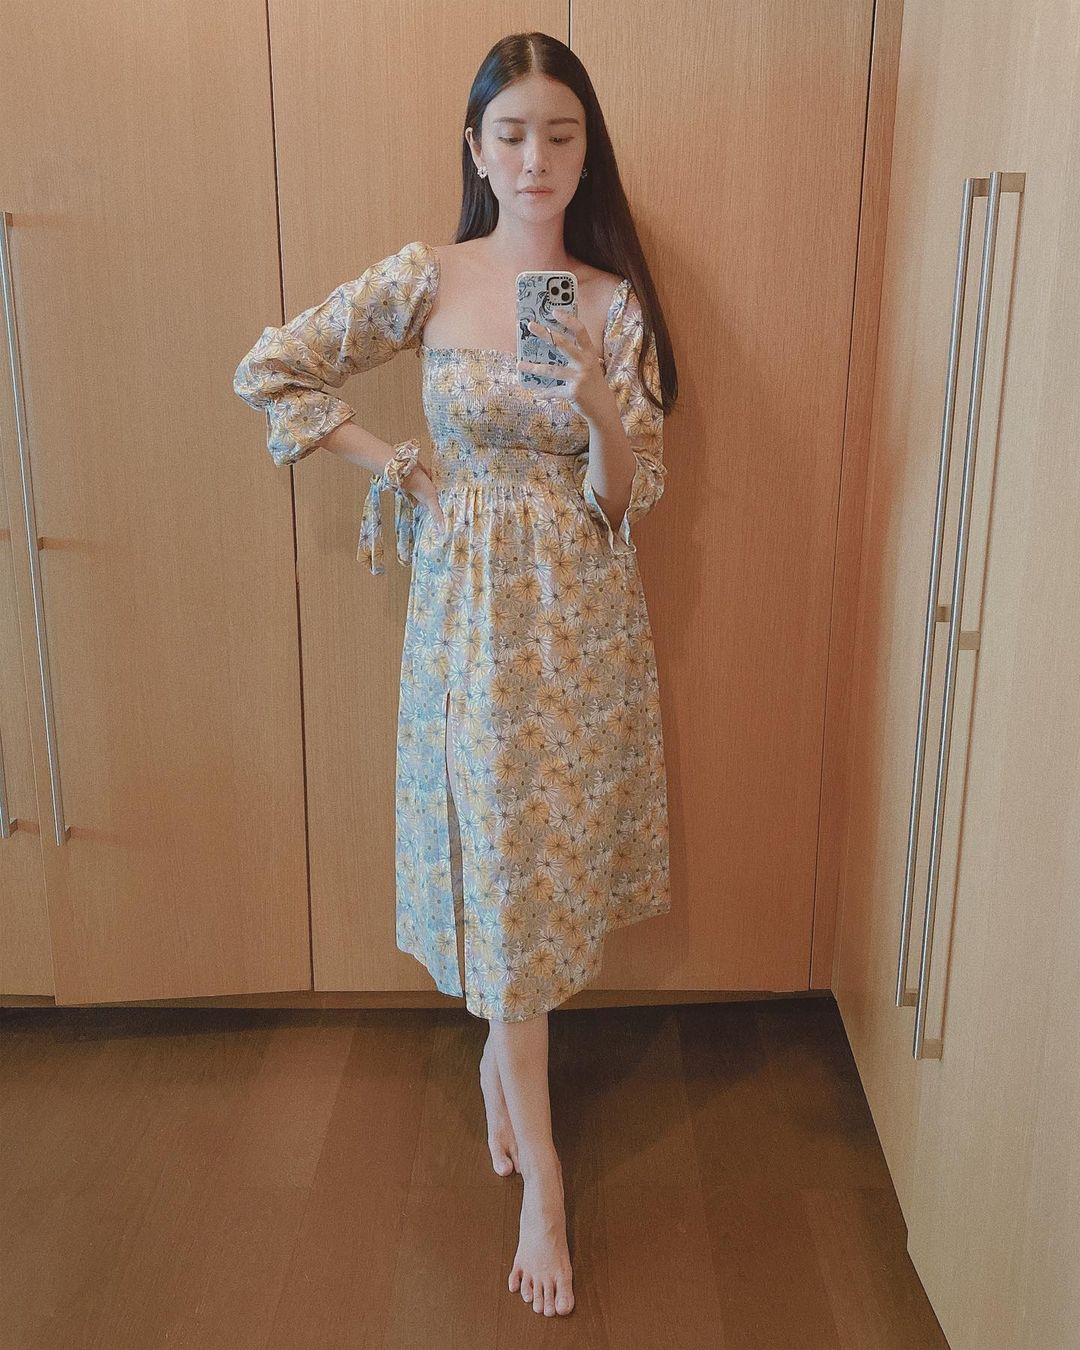 floral dress ootds by tricia gosingtian